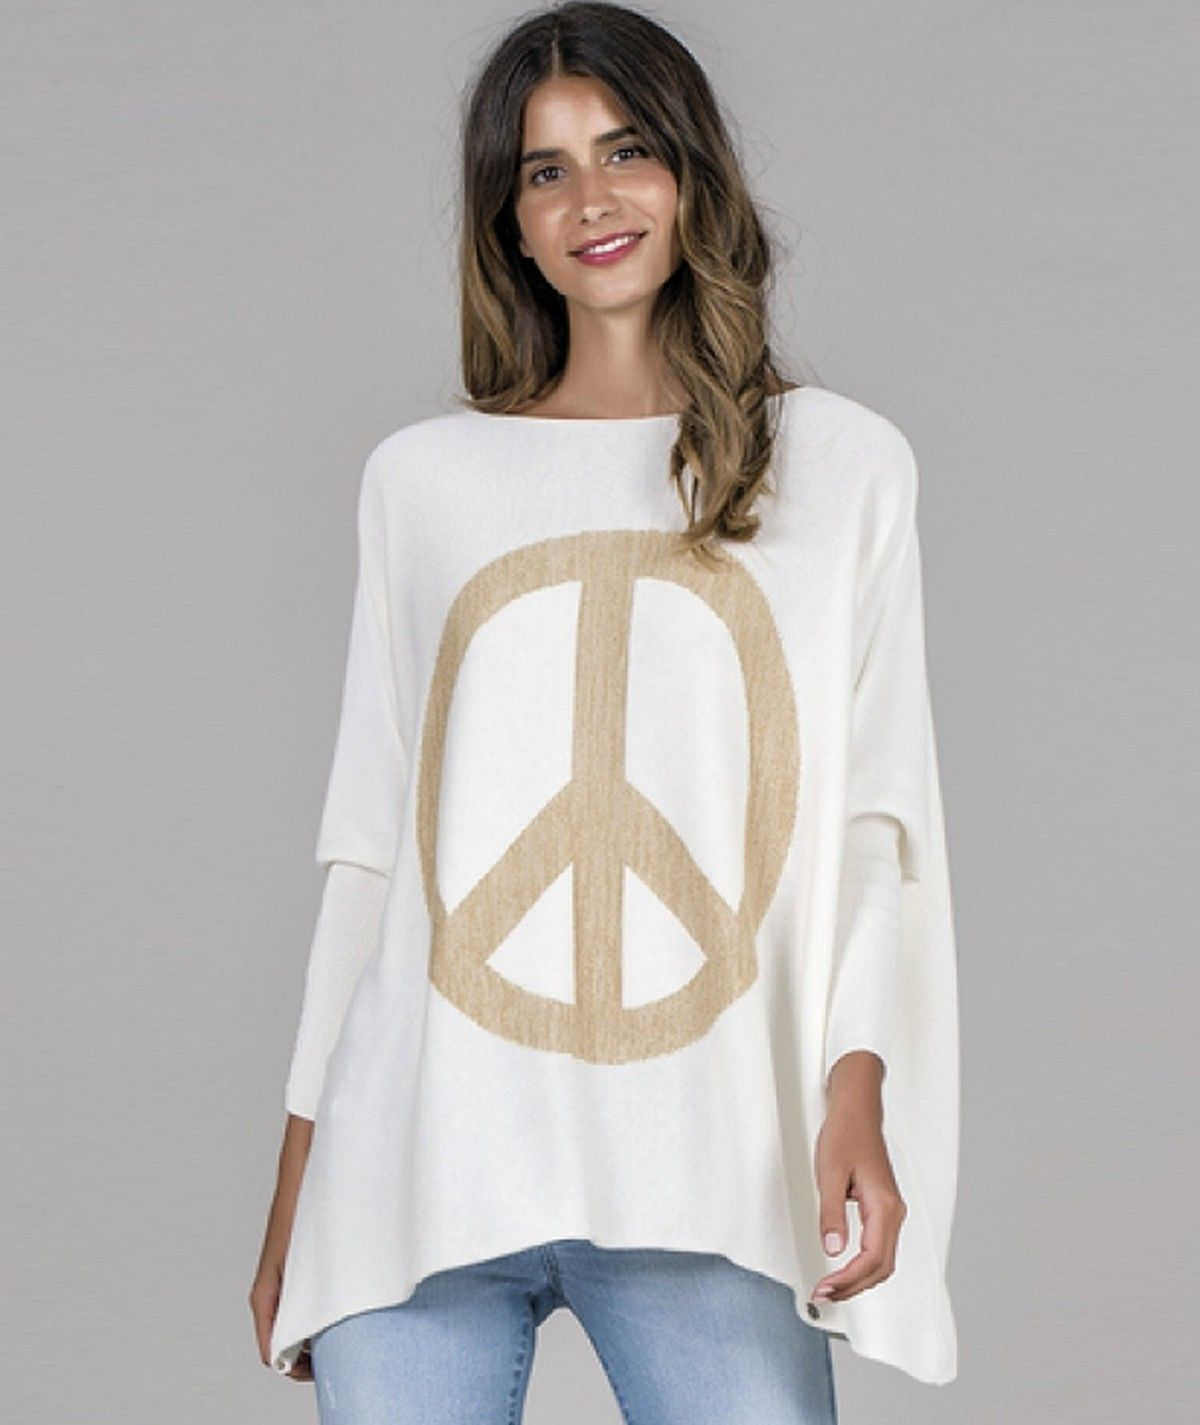 Peace motif sweater